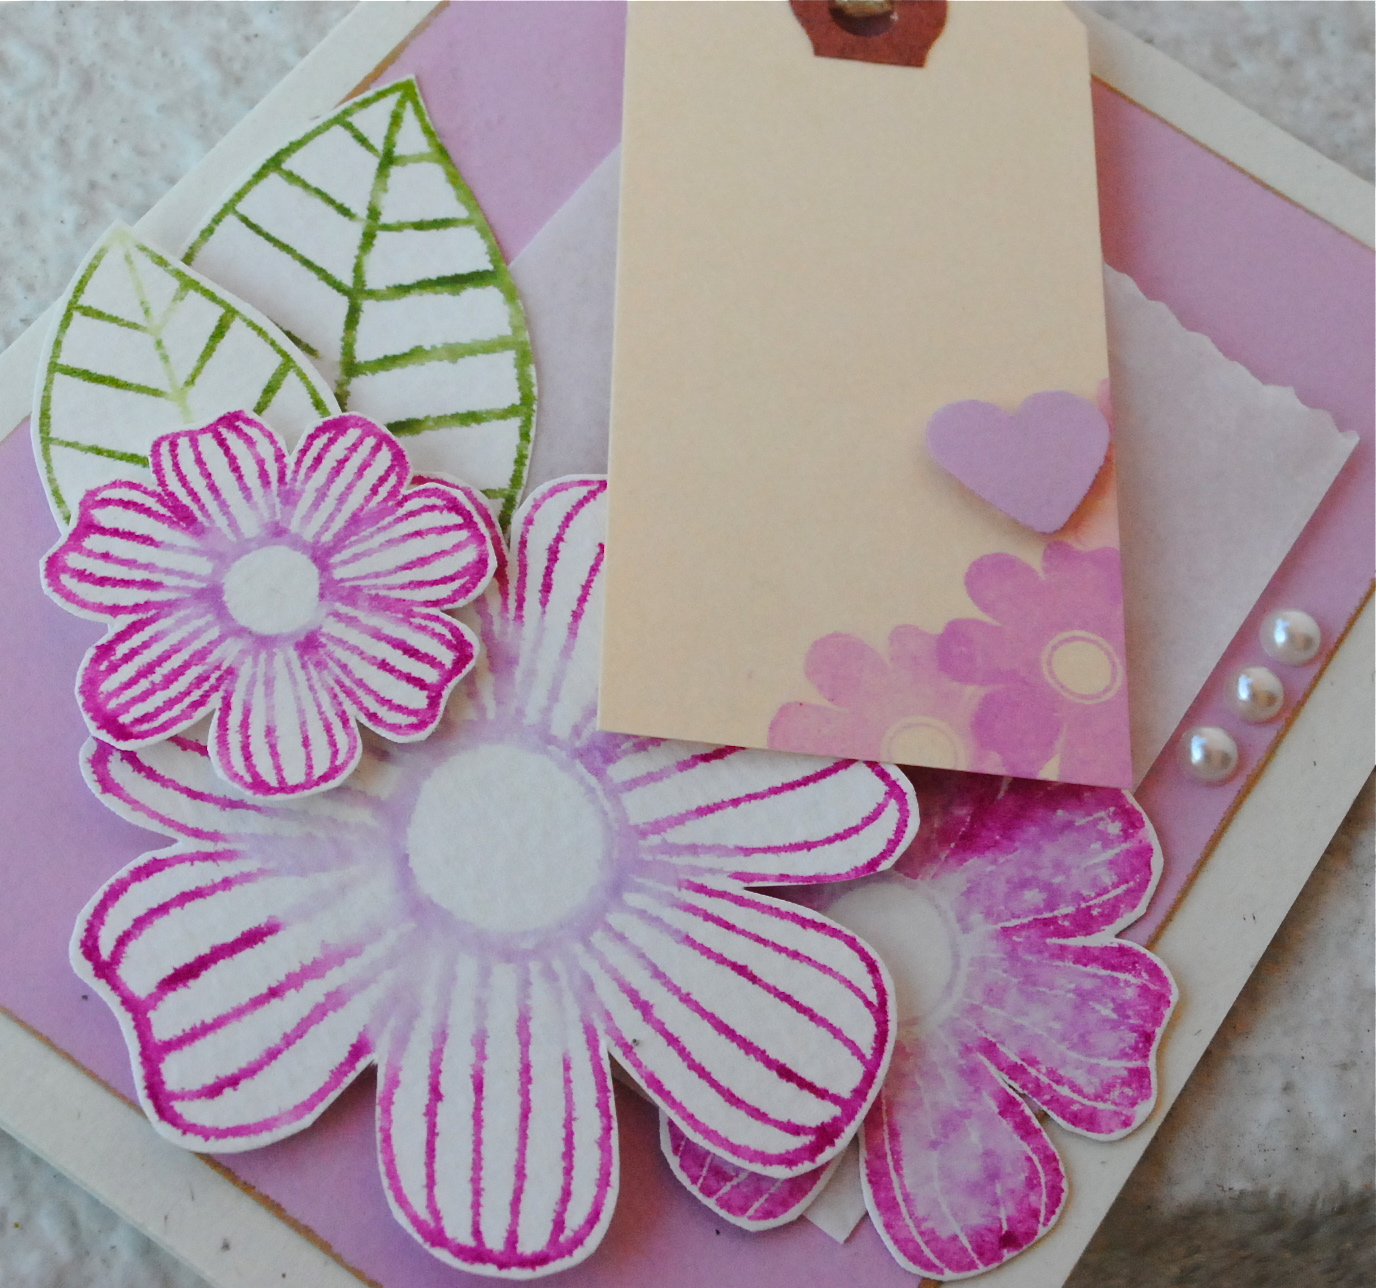 Handmade cards stephinka handmade floral cards handmade cards singapore hand cut flowers memento markers stamping and m4hsunfo